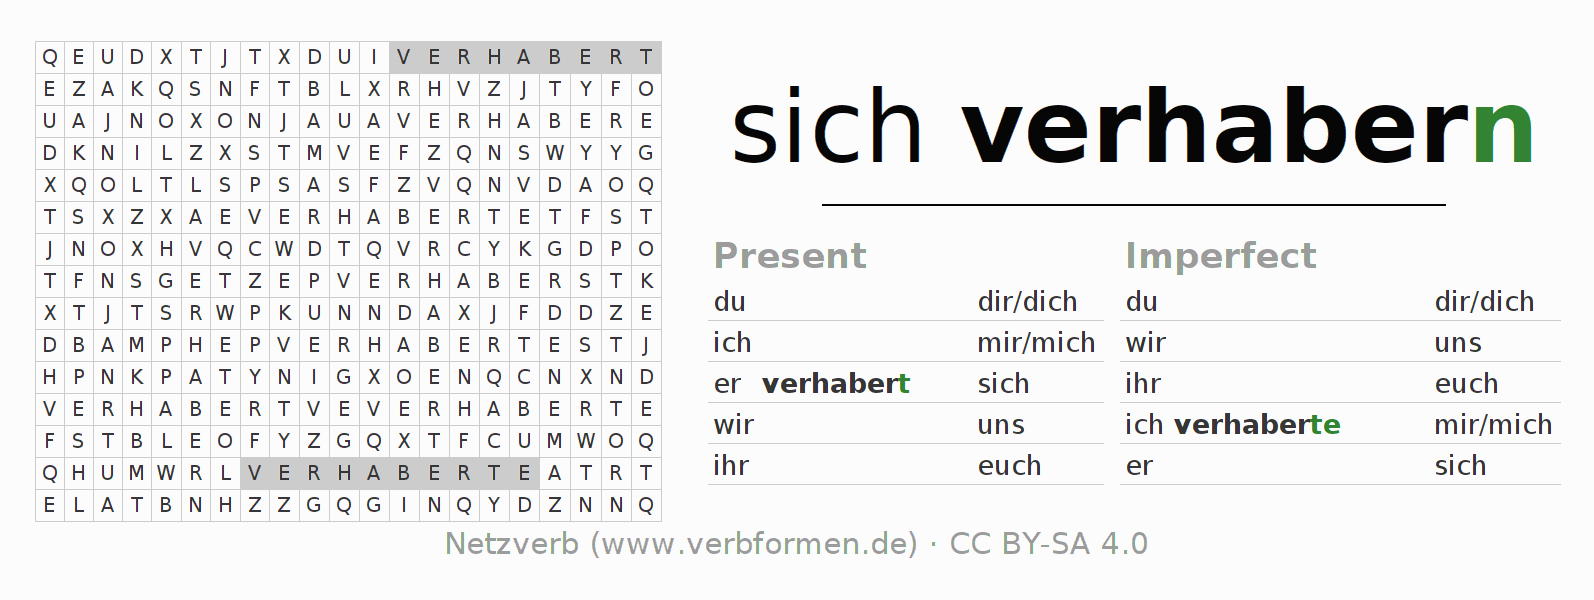 Word search puzzle for the conjugation of the verb sich verhabern